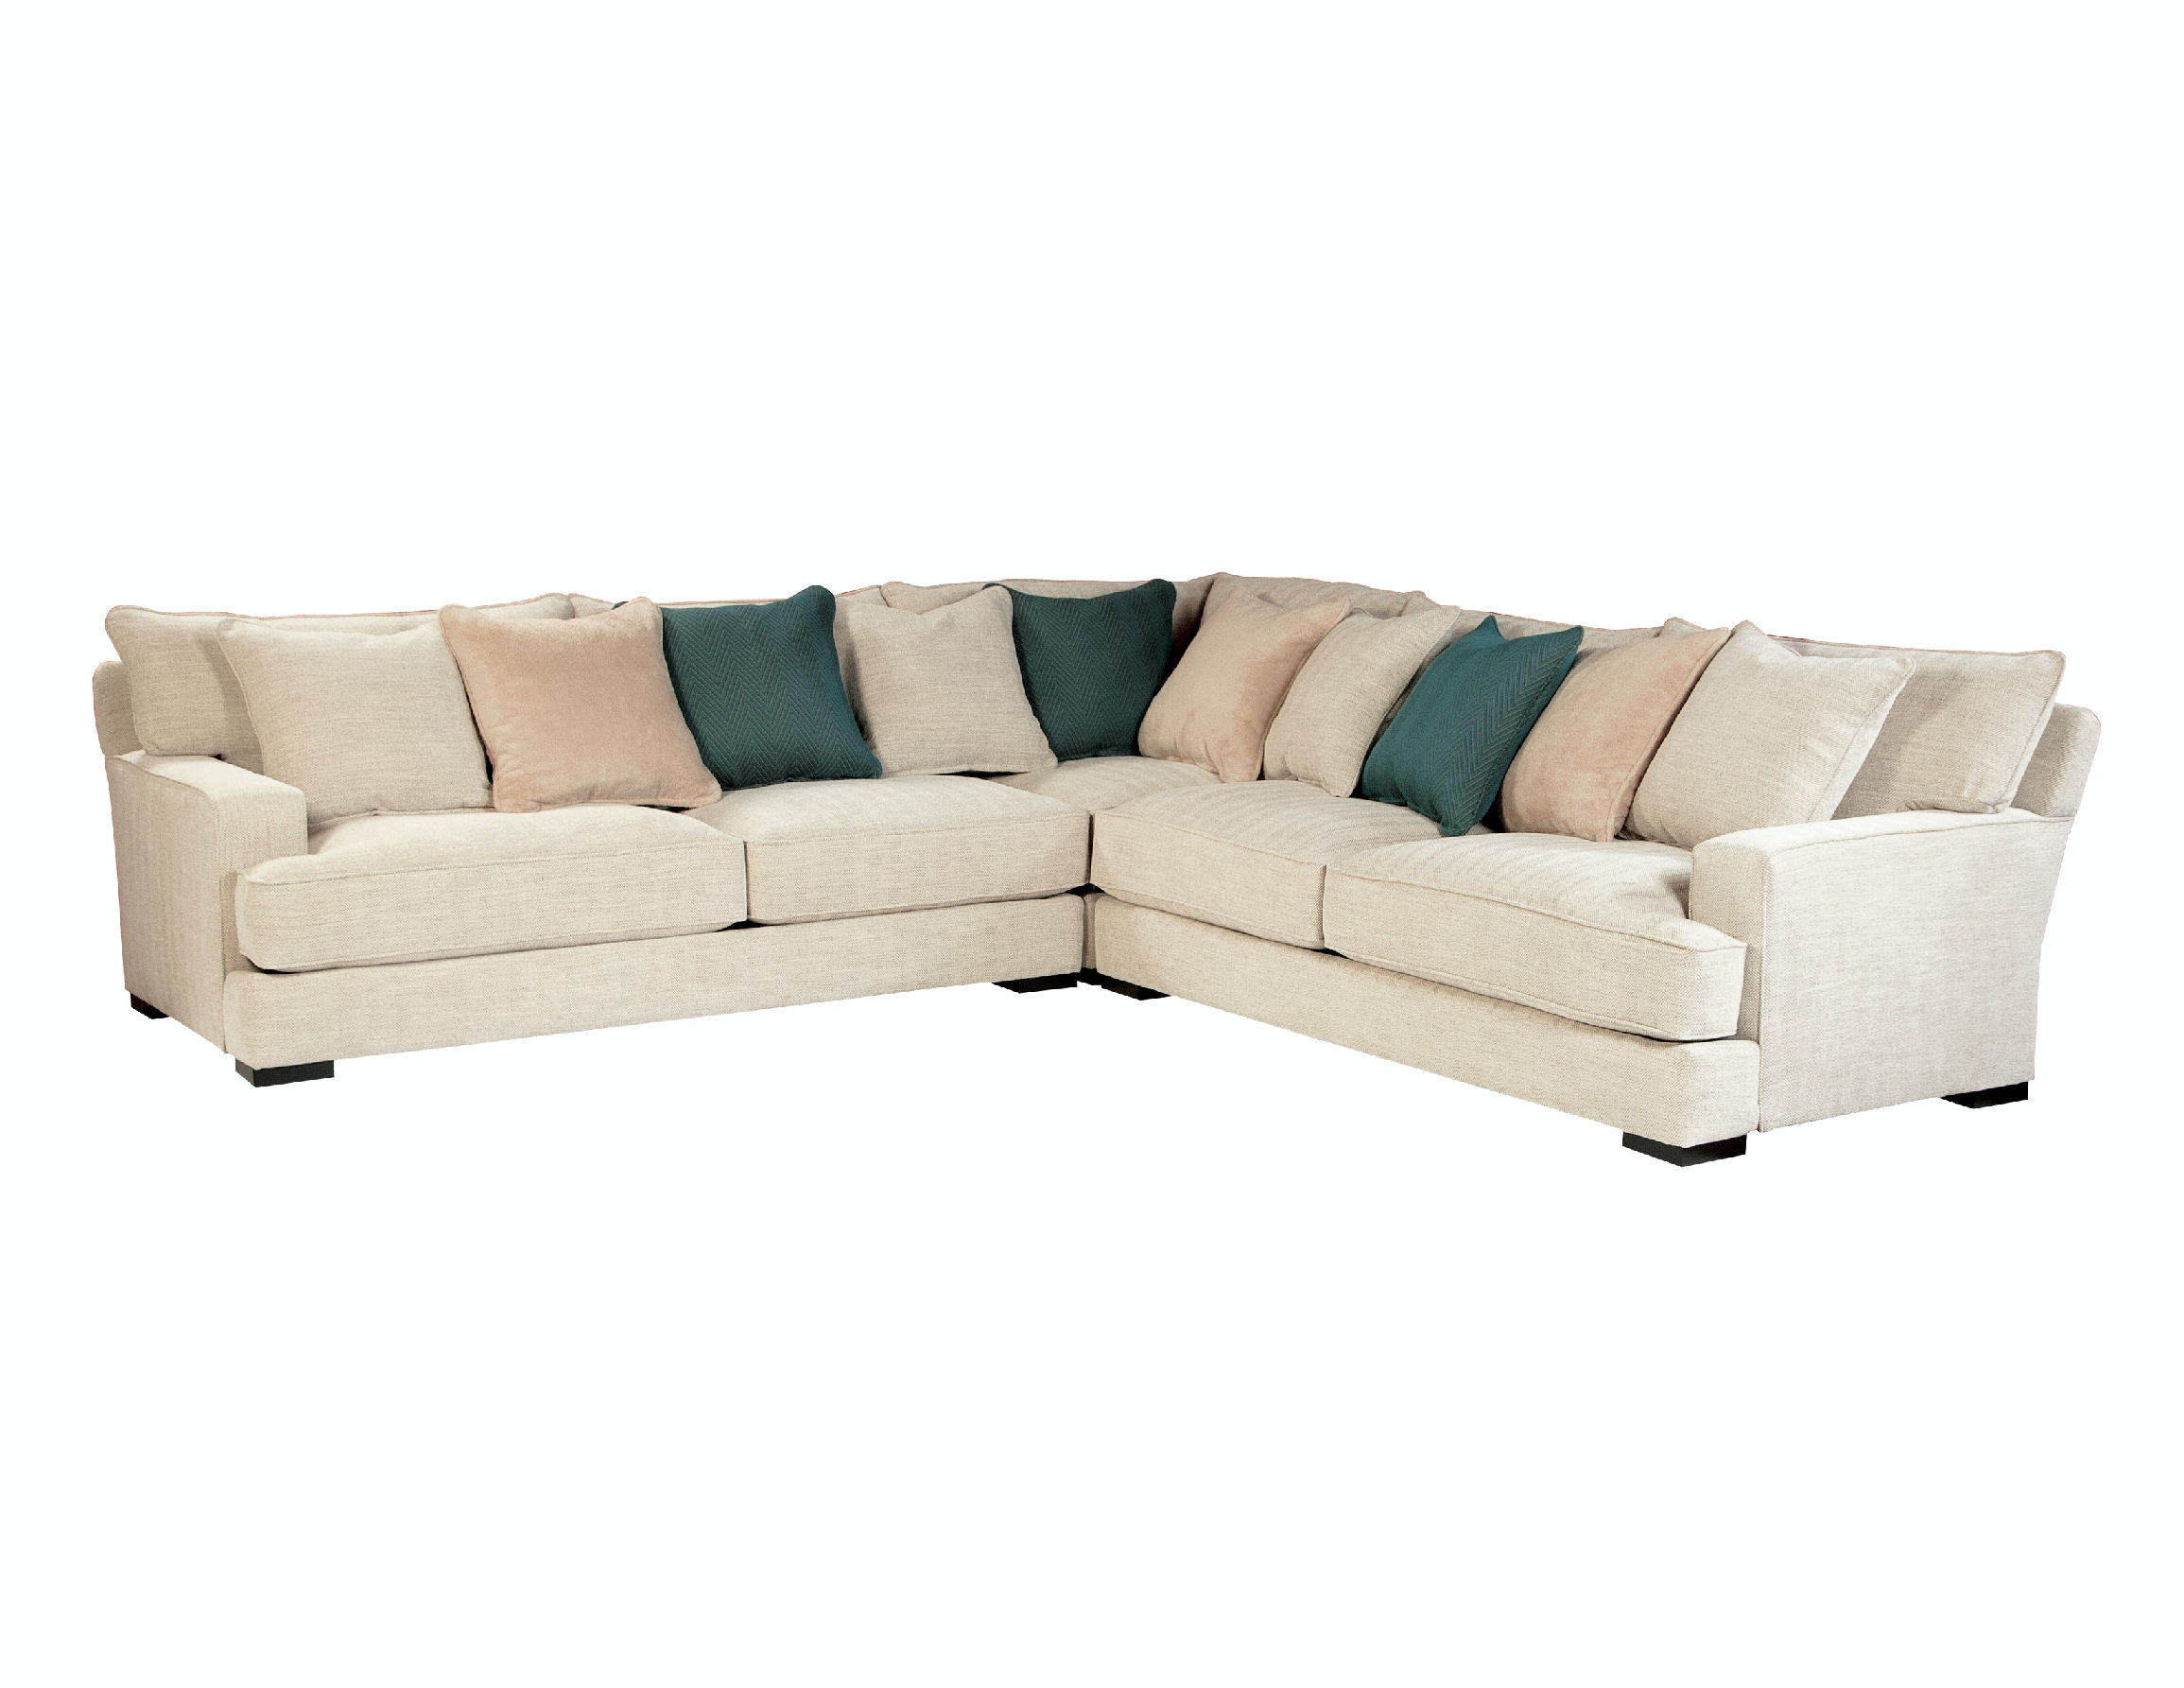 246-Sectional  sc 1 st  Hennen Furniture : jonathan louis burton sectional - Sectionals, Sofas & Couches